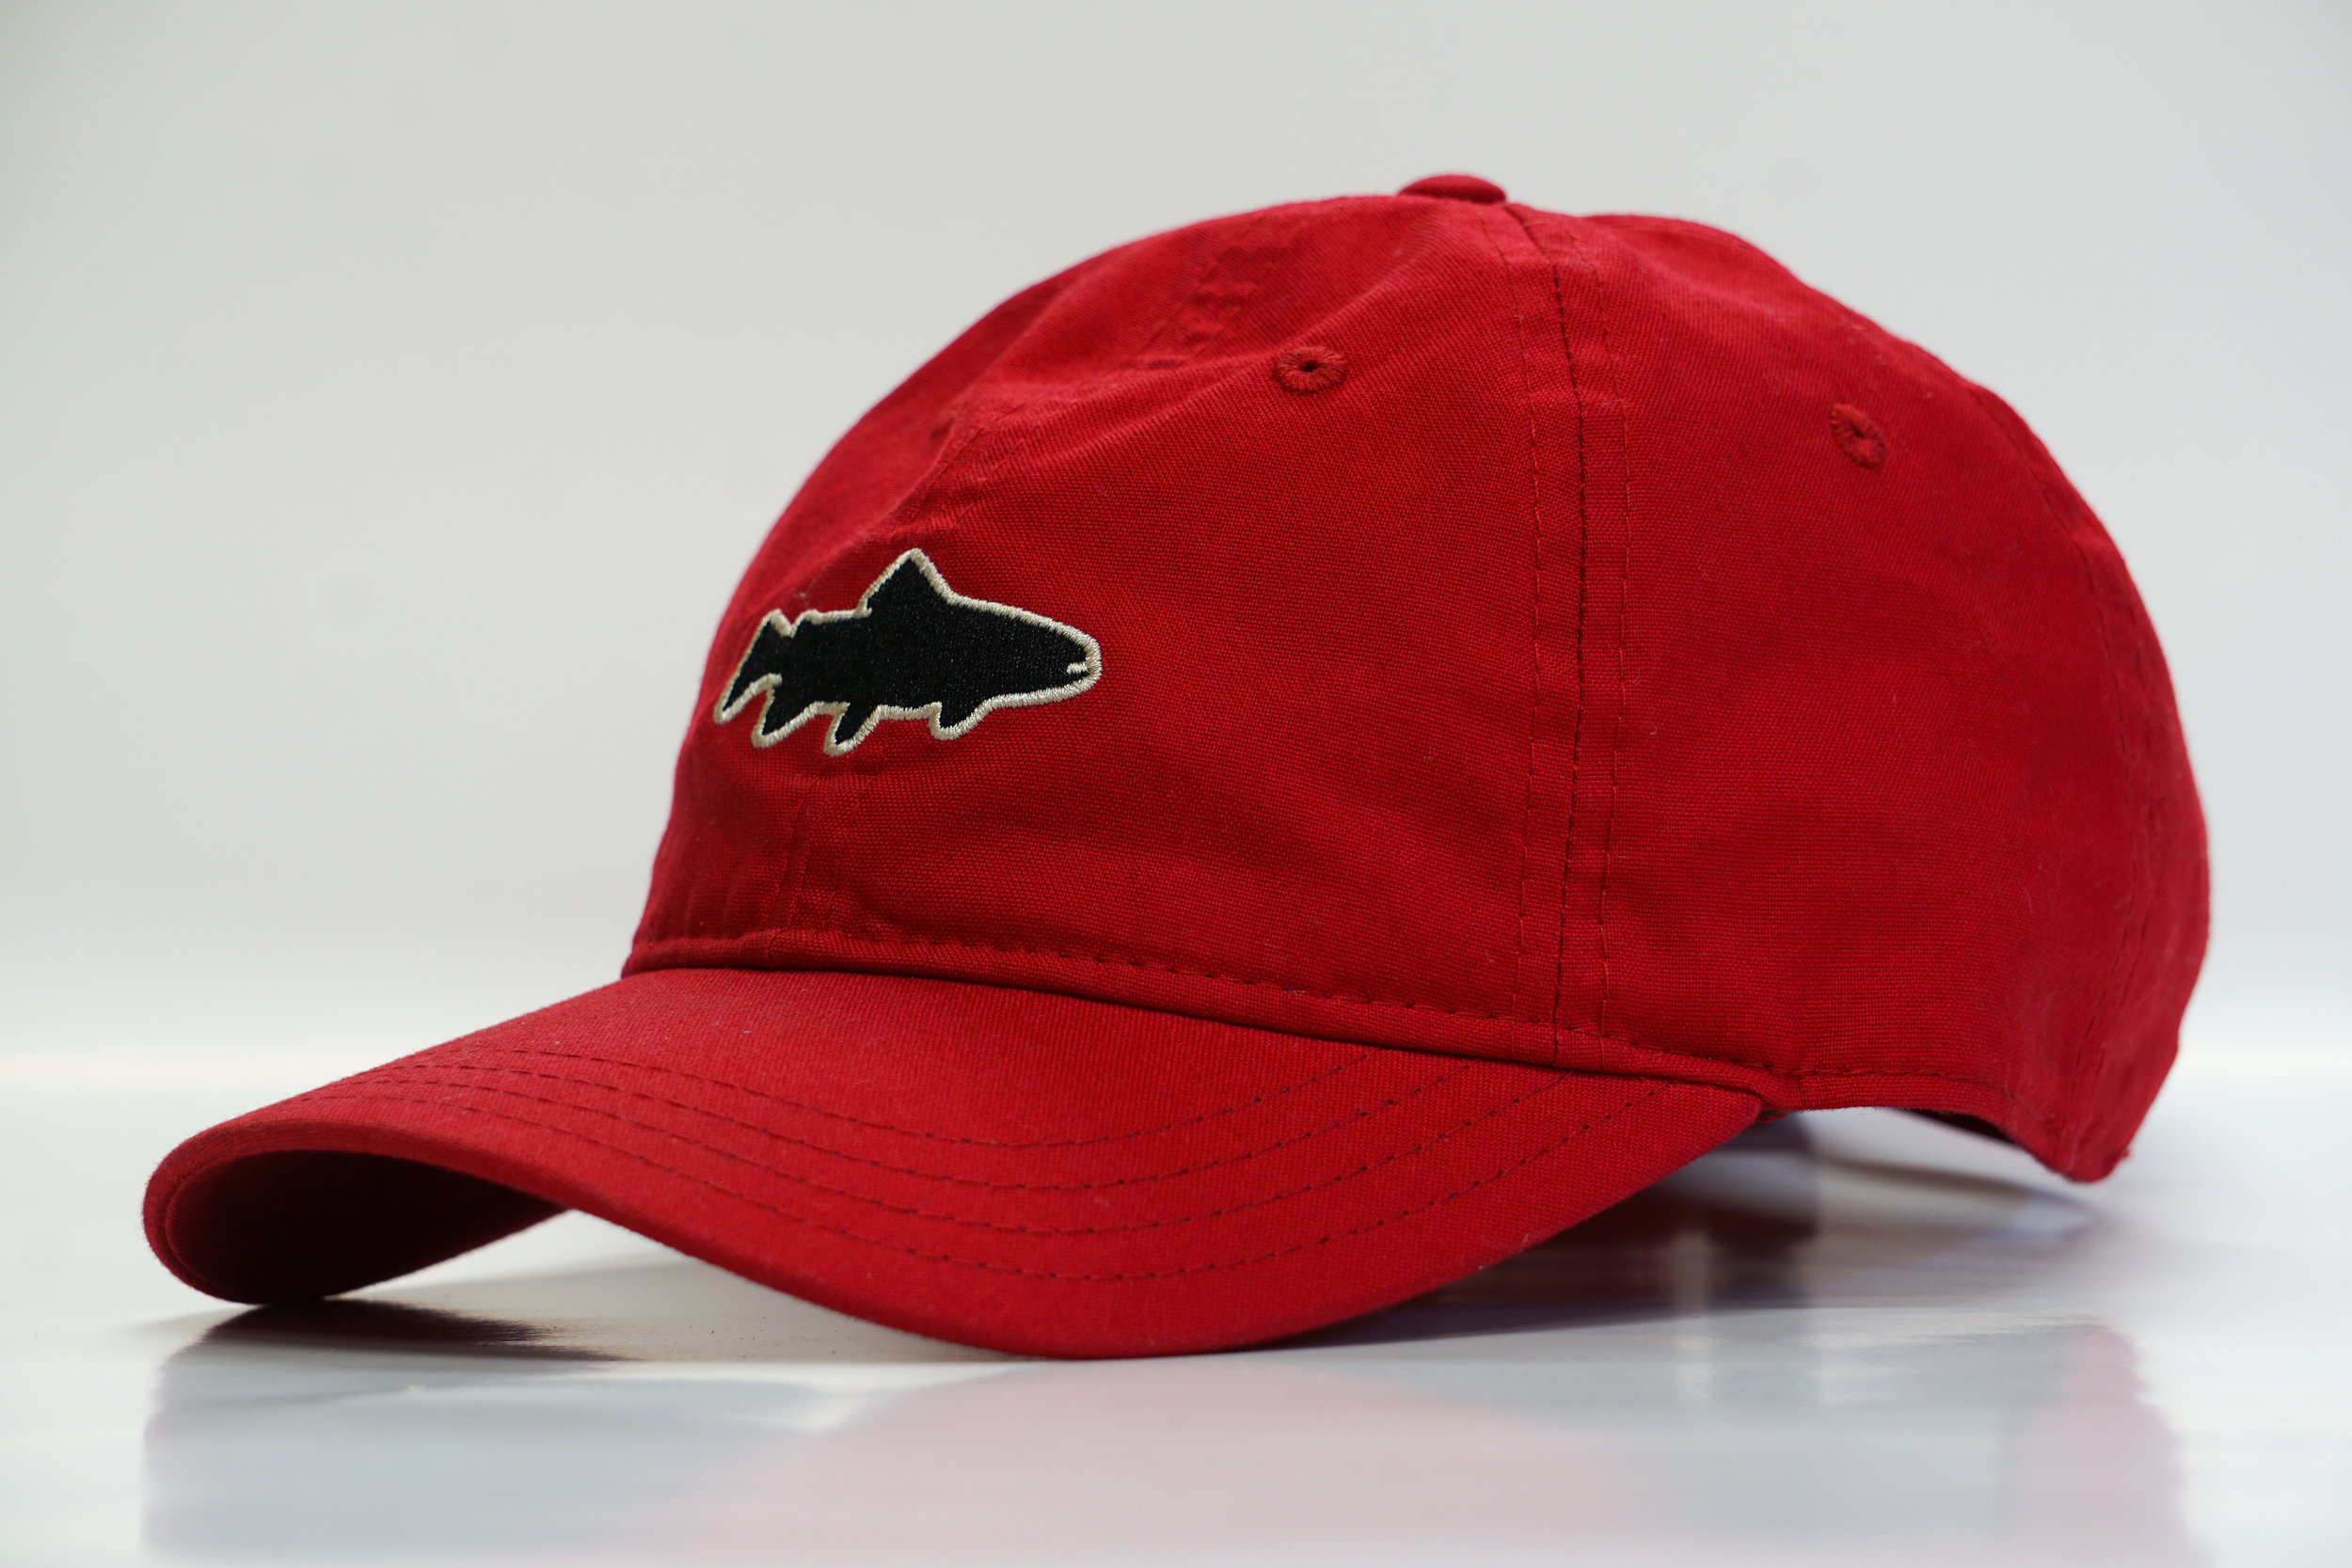 54a014339cc Yewchati Dawgs Trout Hat - Red — Yewchati Co.